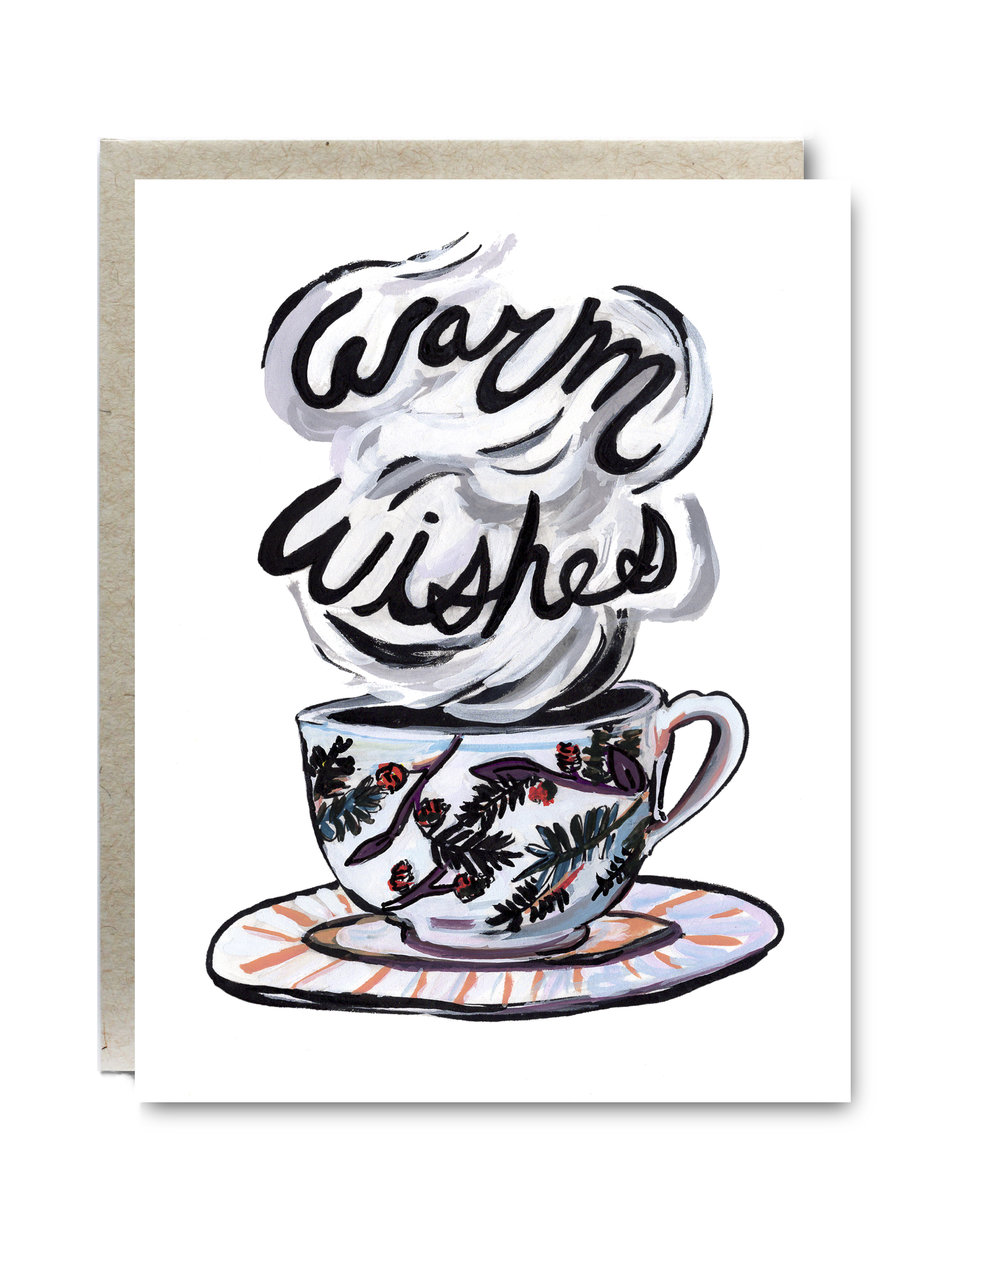 Warm Wishes Mug Card - $5.00